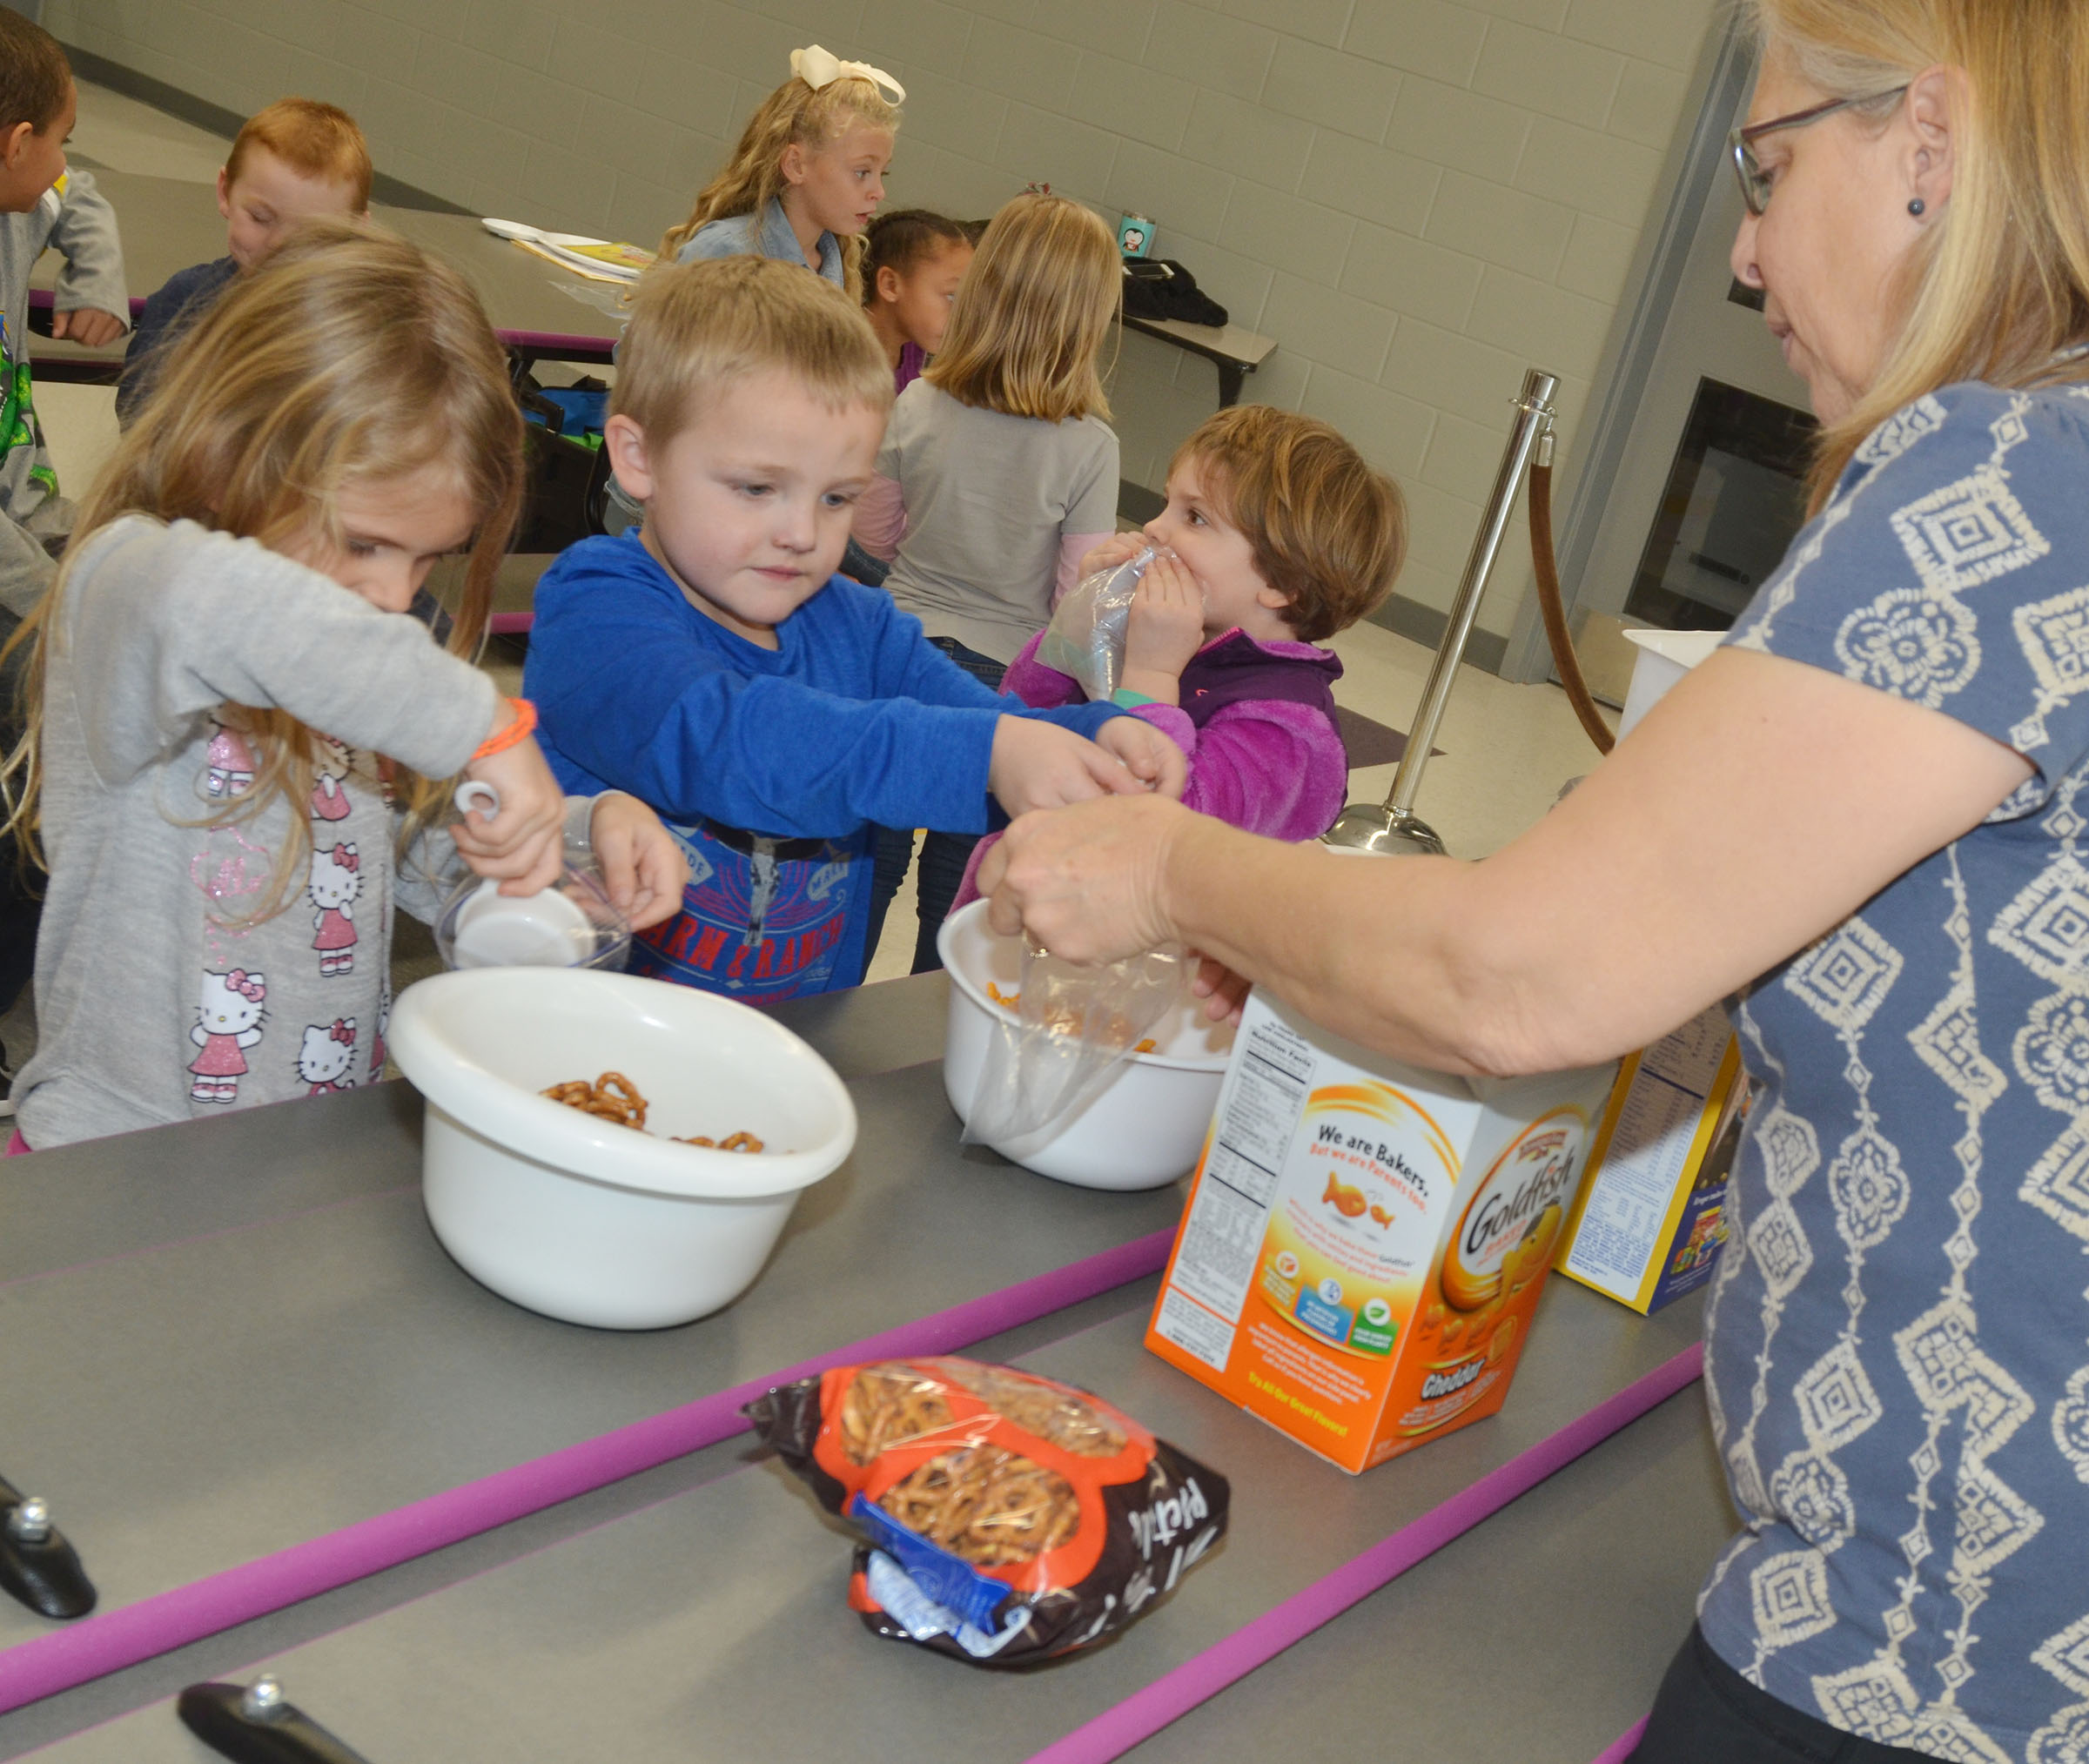 Angie Freeman, expanded foods and nutrition program assistant at Taylor County Extension Office, helps CES kindergartener Tristian Harris make his trail mix, as Gracie Gebler adds pretzels to hers.